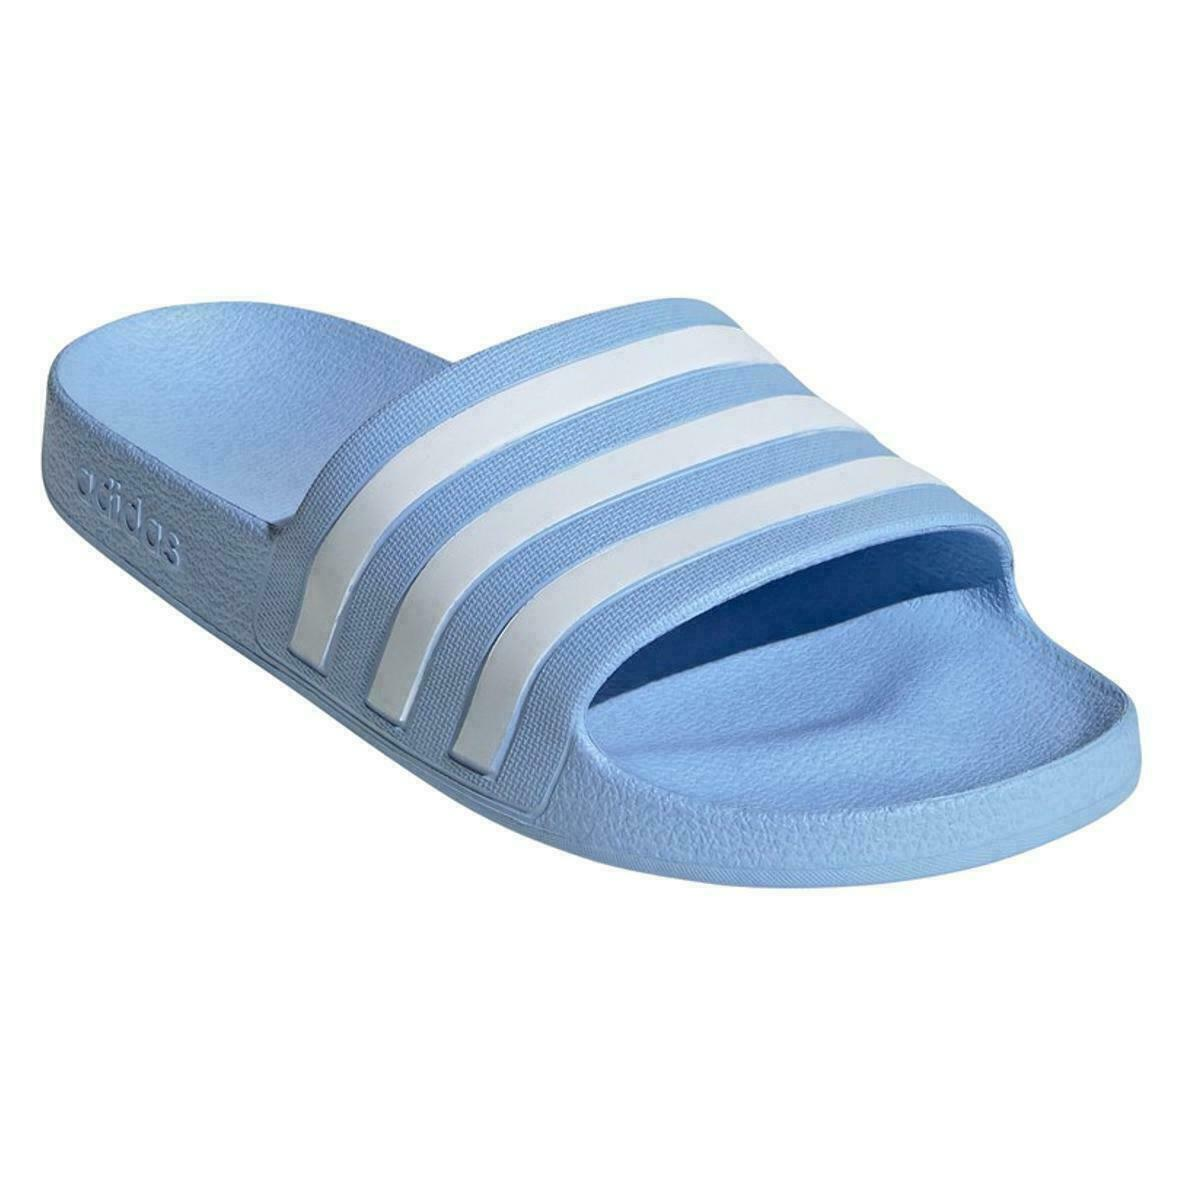 Adidas Womens Adilette Slides - Valley Sports UK